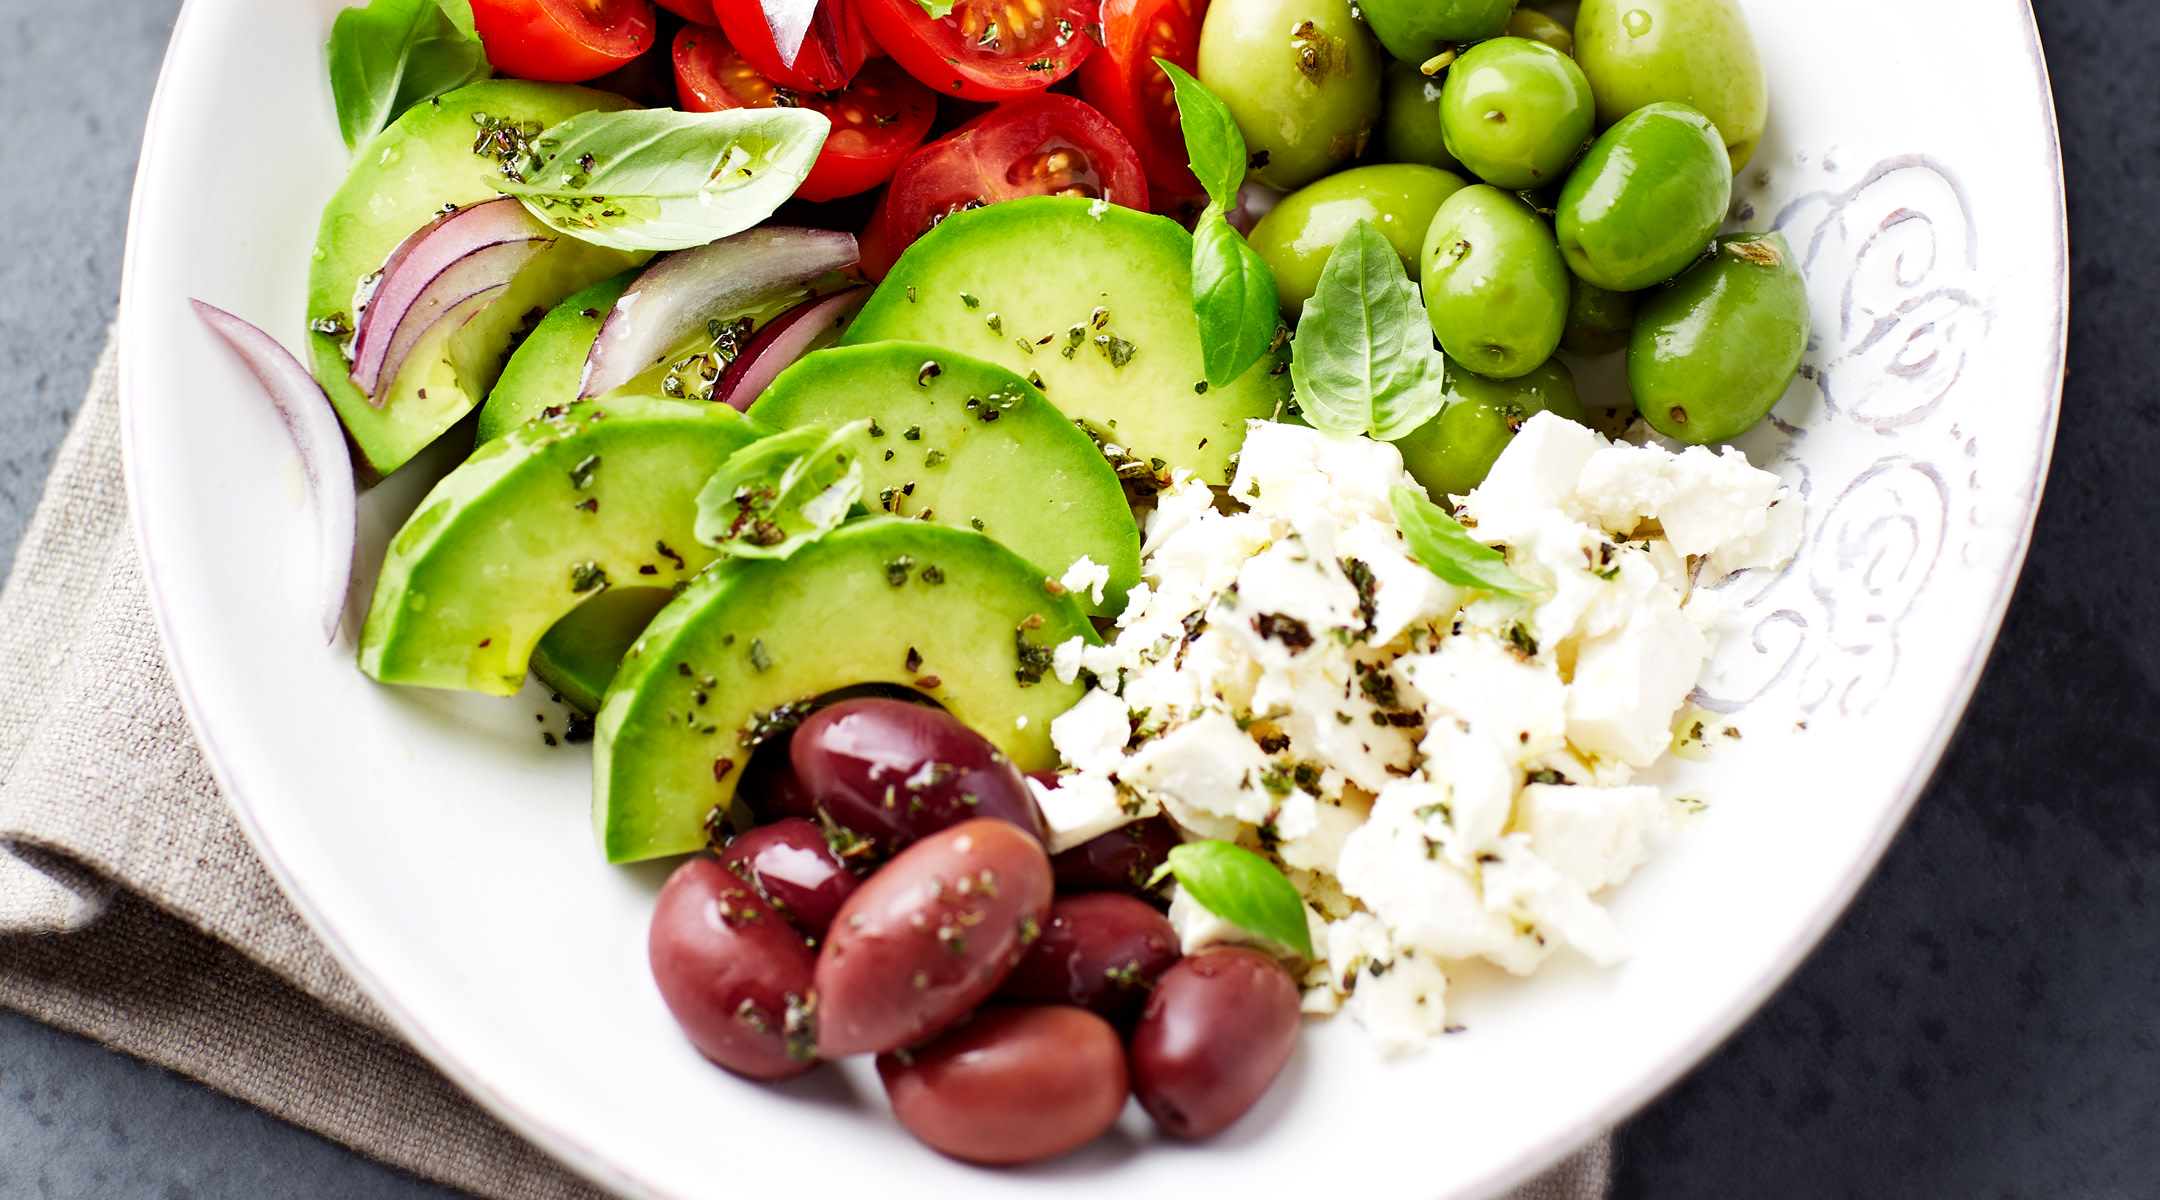 Eating a Mediterranean Diet Could Help You Get Pregnant